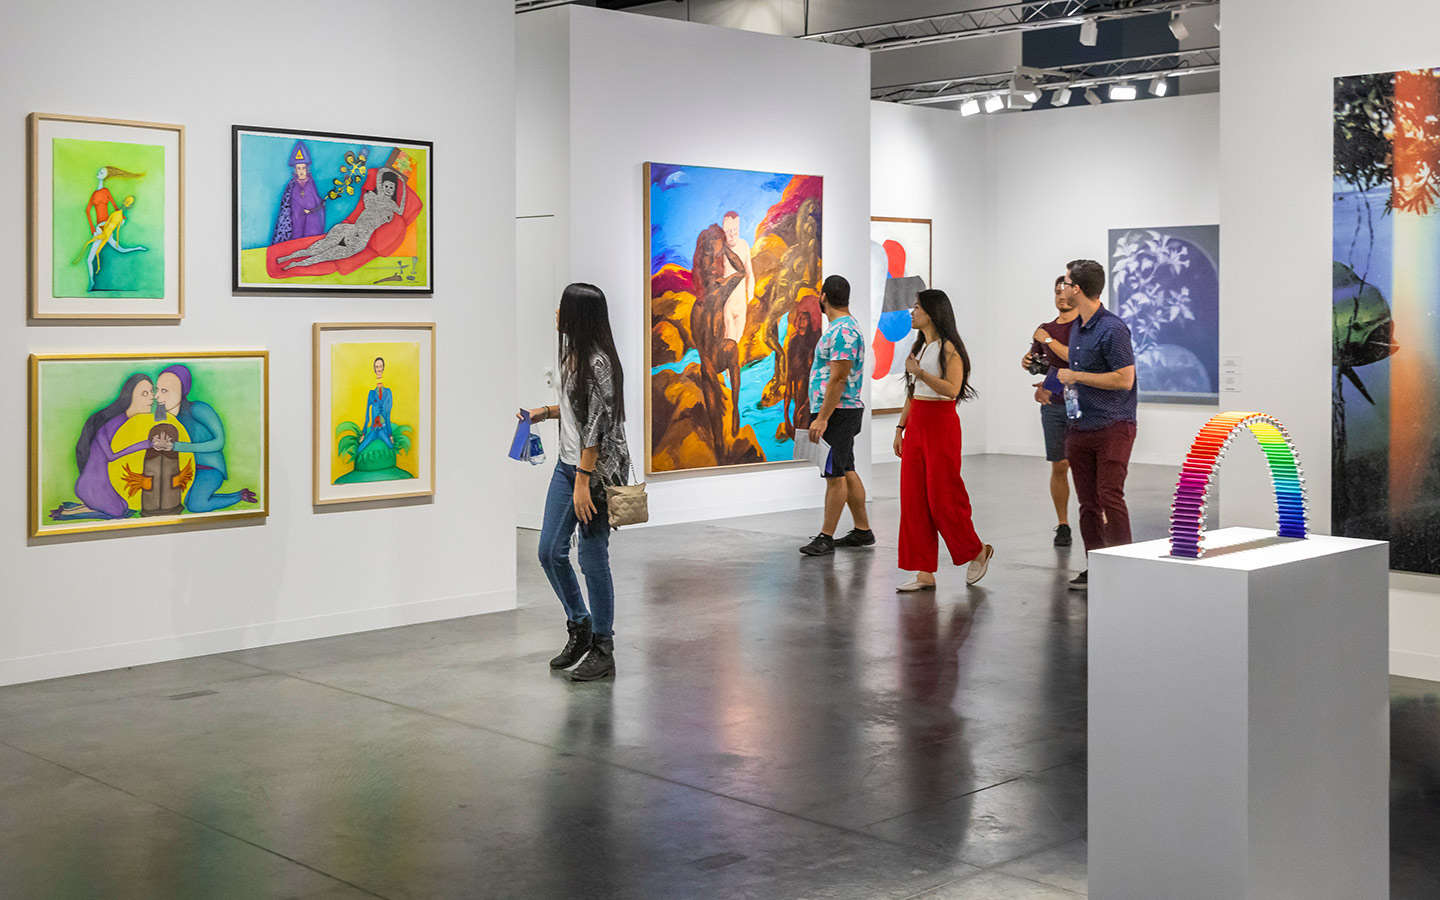 3 Things to do in Miami for Art and Culture Lovers